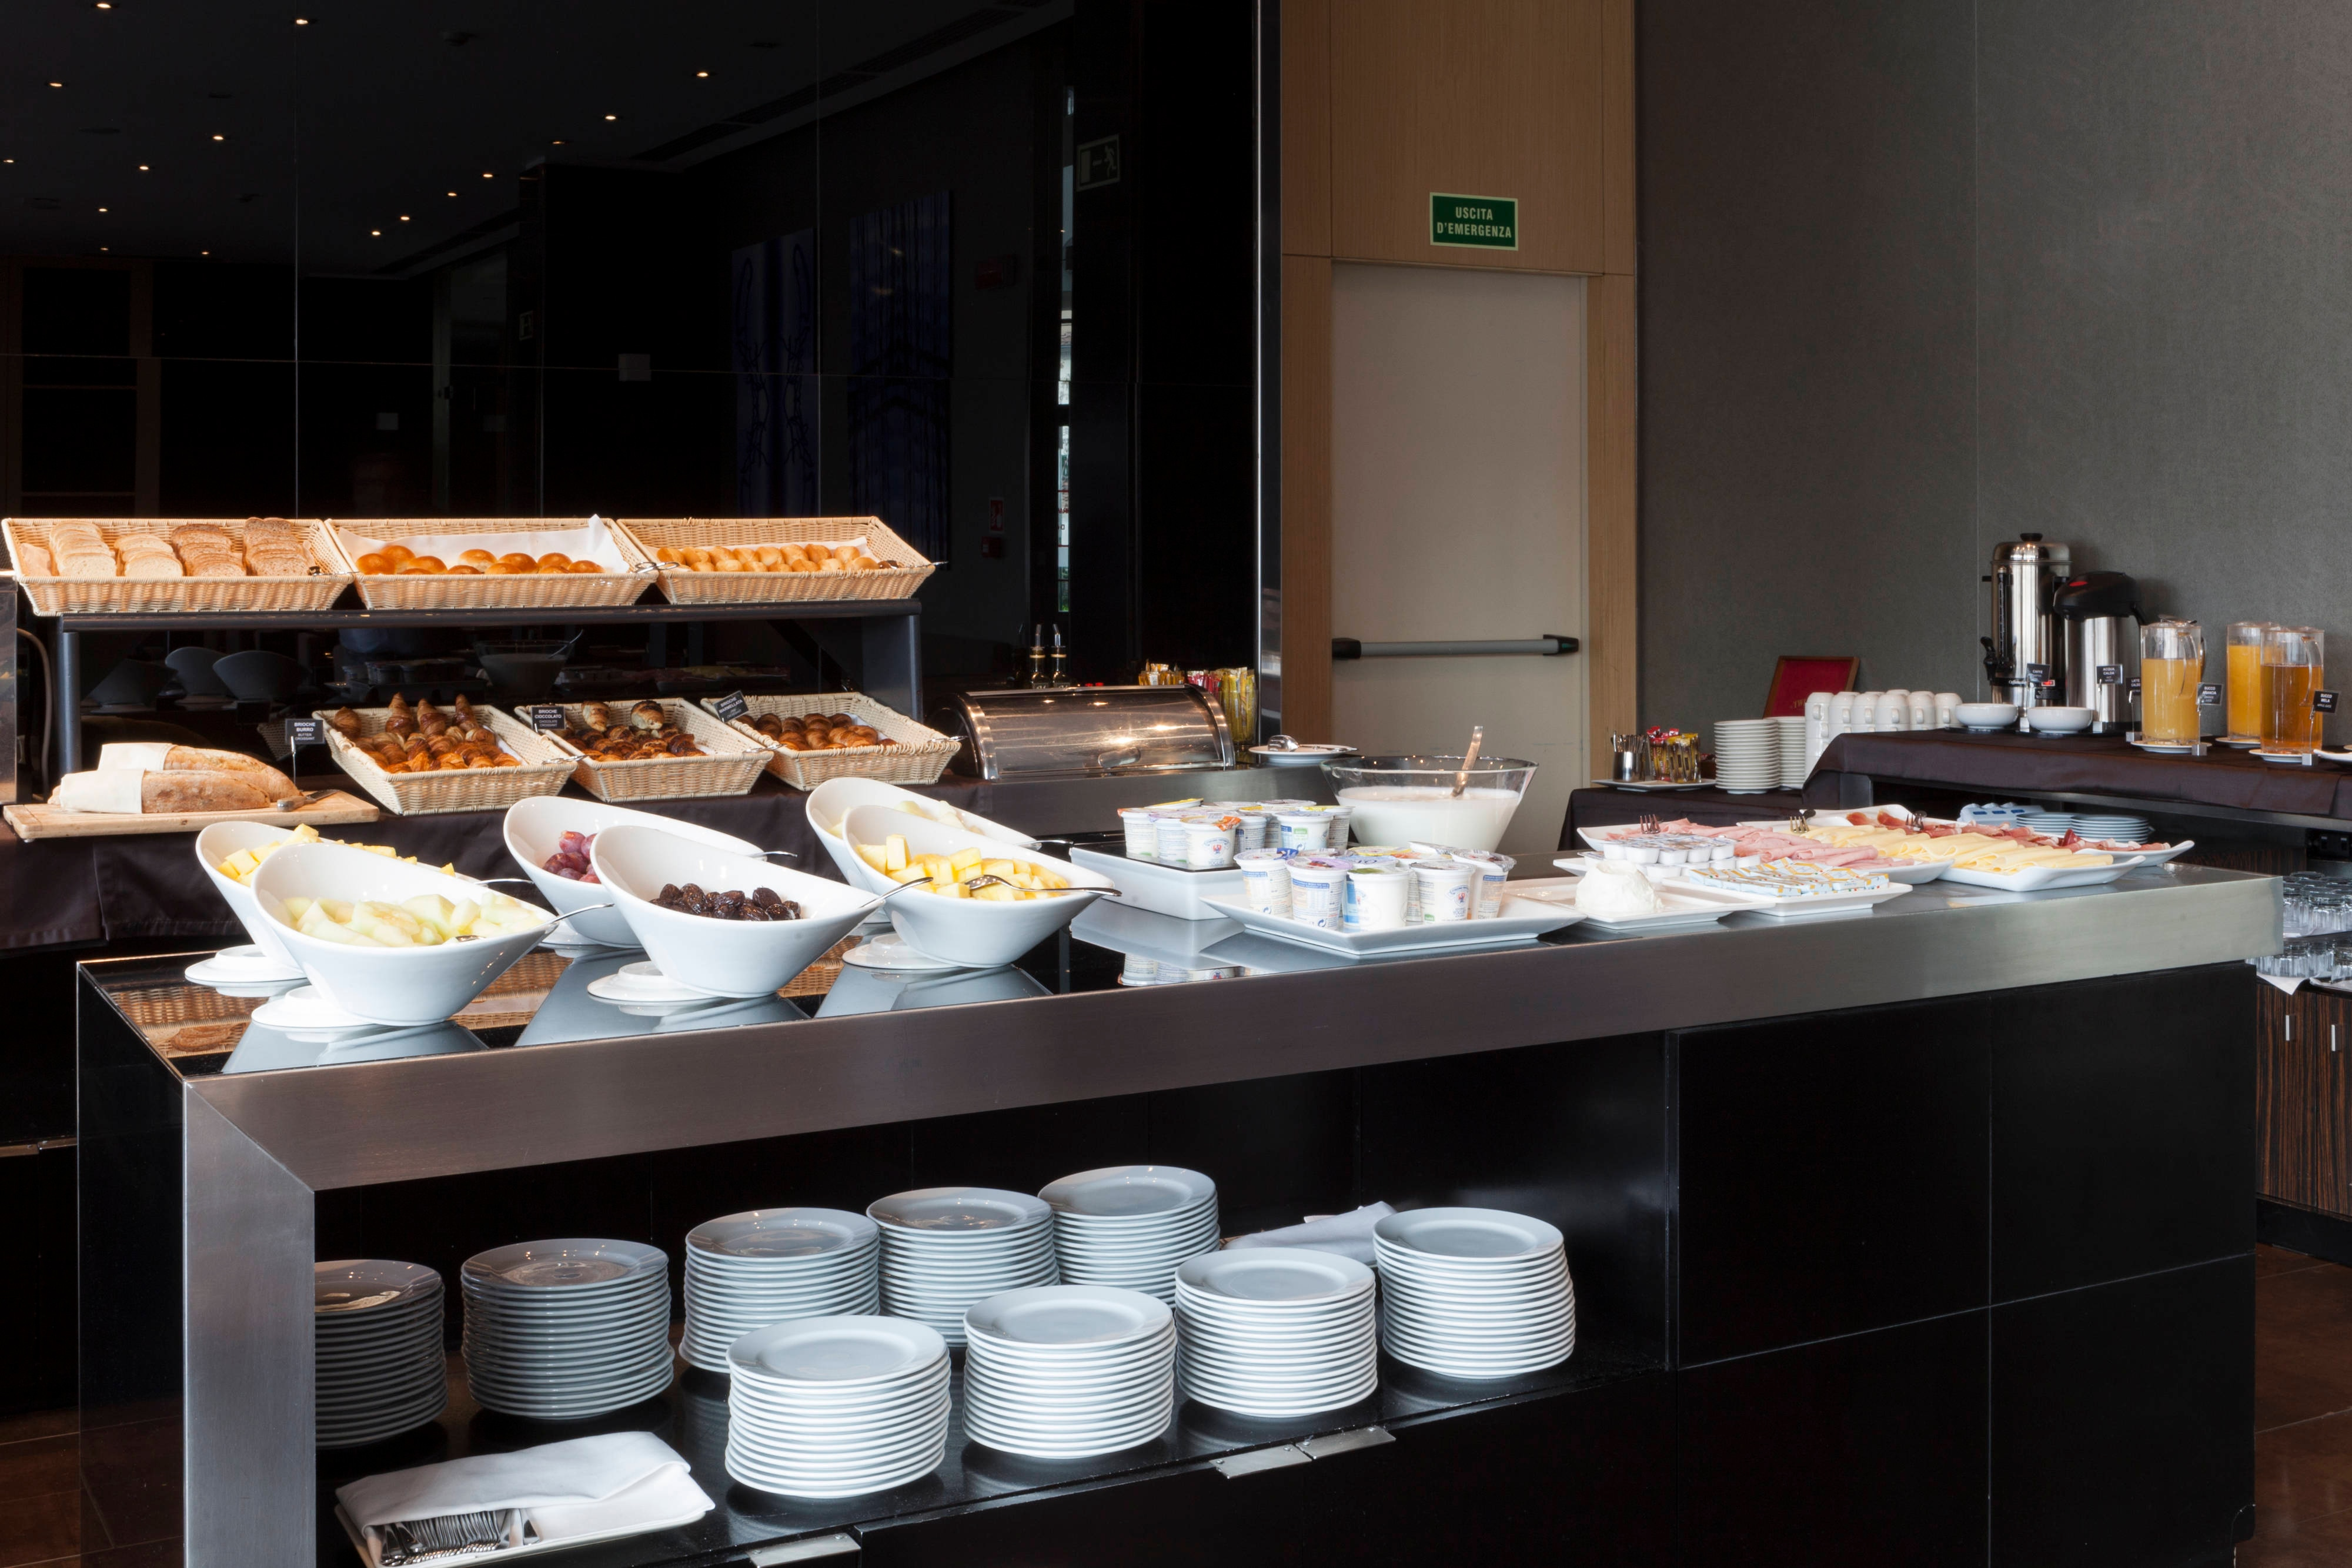 AC Hotel Firenze Breakfast Buffet